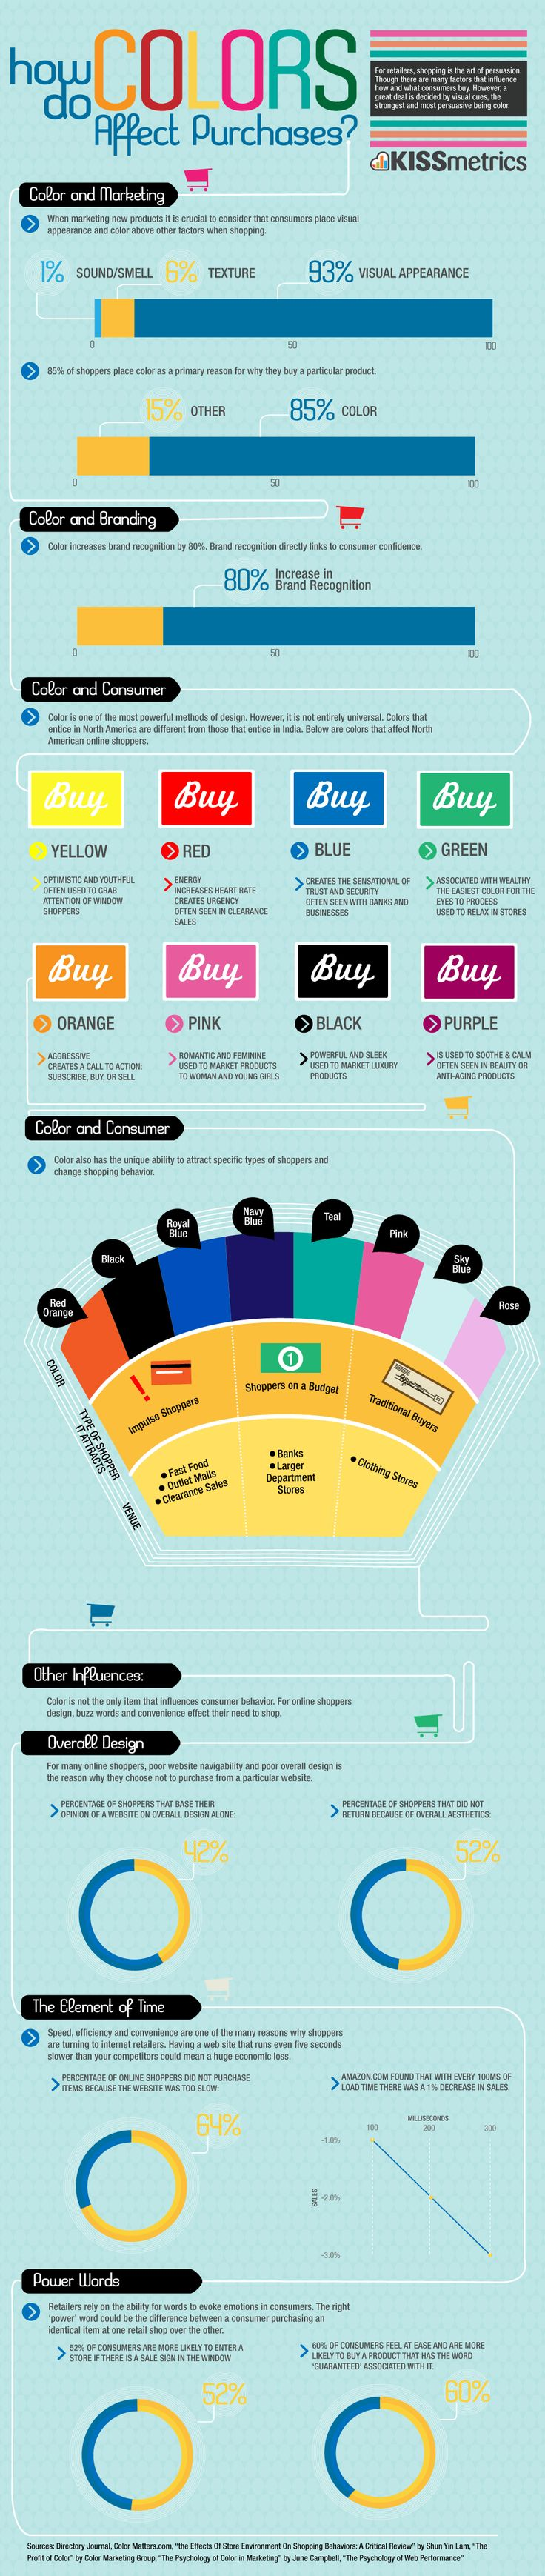 Use color to your advantage across all of your marketing channels to improve brand awareness and drive purchasing.